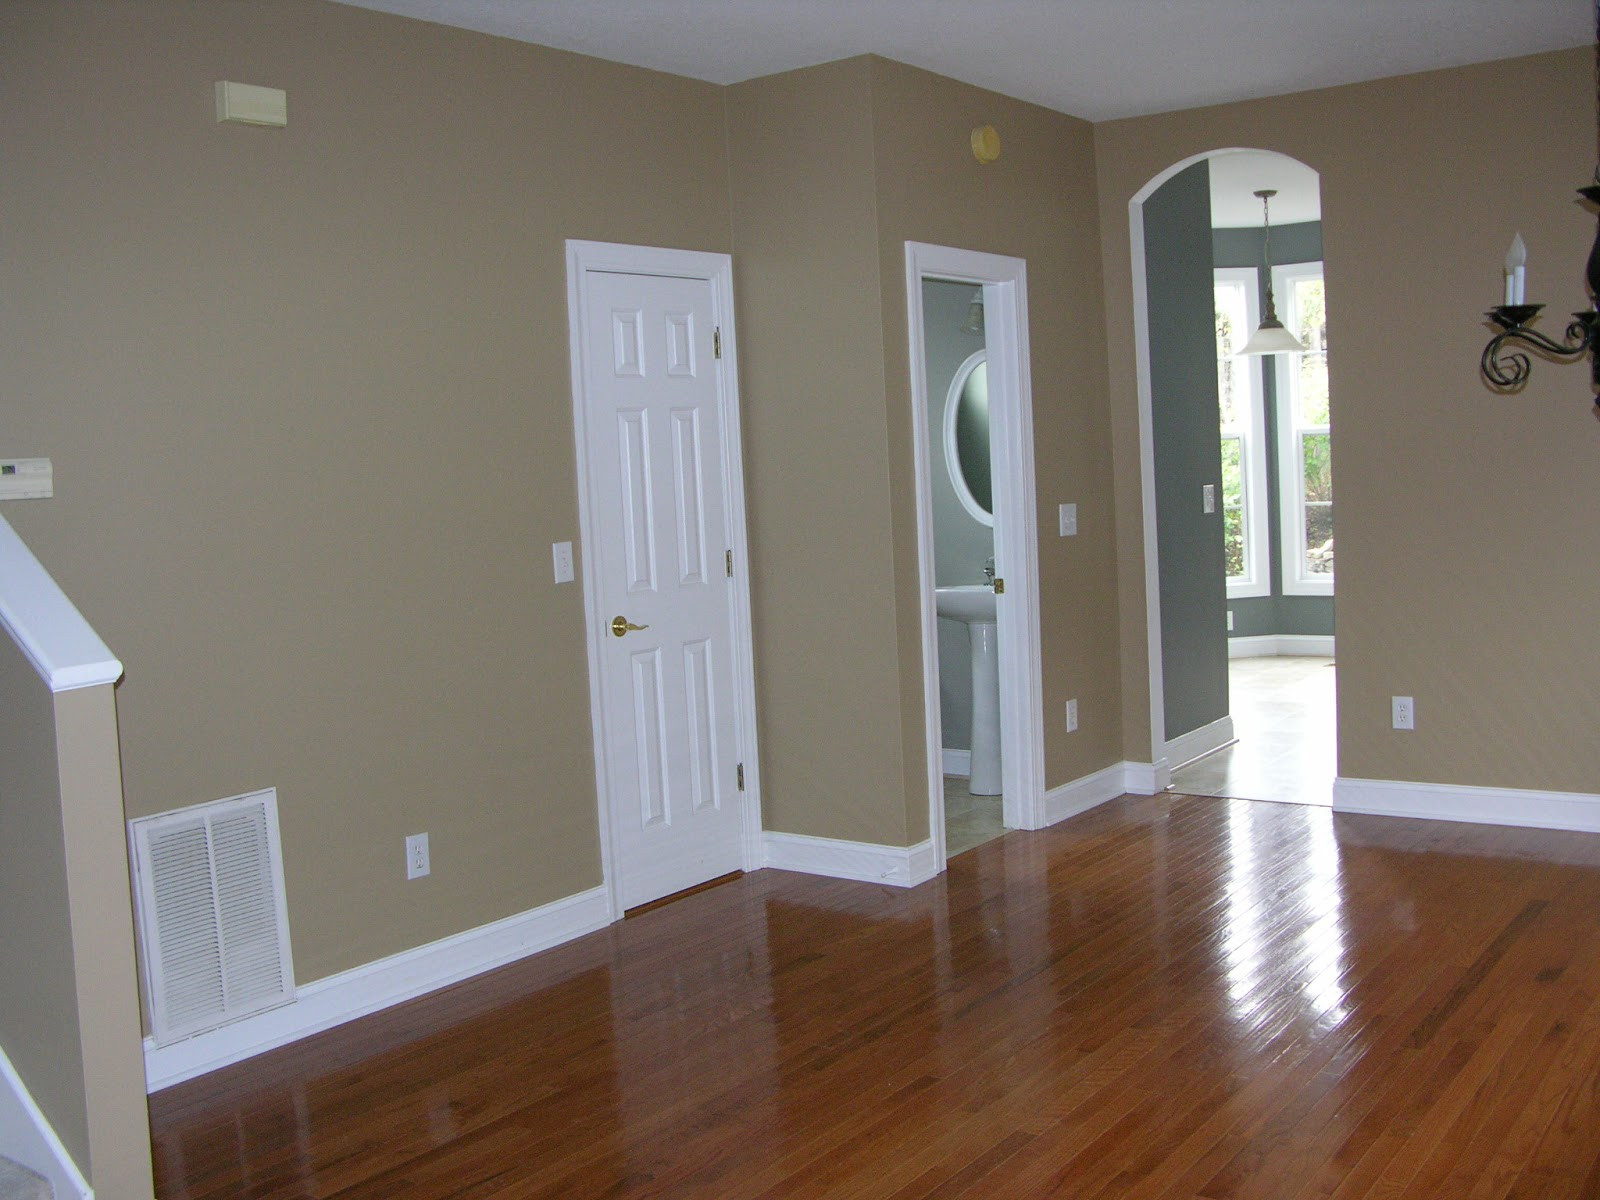 Best ideas about Interior Paint Colors . Save or Pin Sandy at Sterling Property Services Choosing Paint Colors Now.